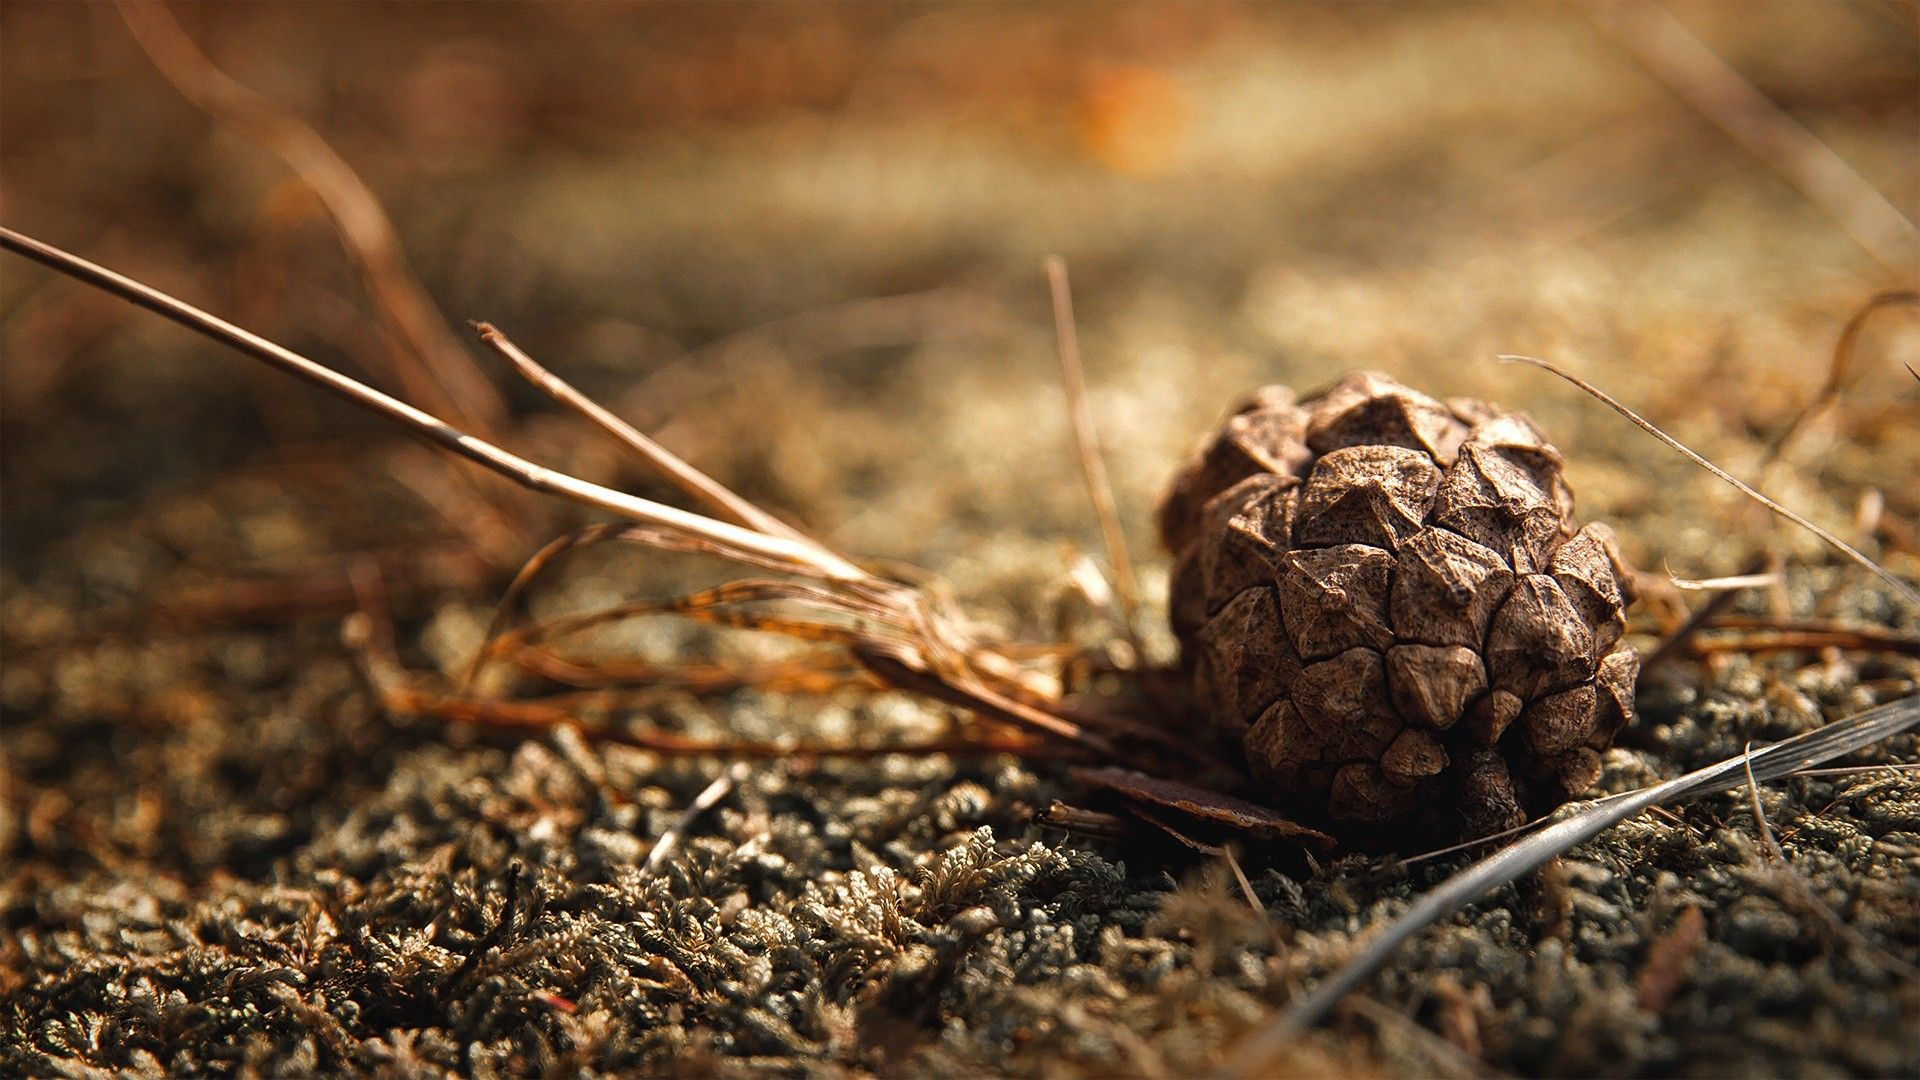 Fir cones on a branch wallpapers and images wallpapers pictures